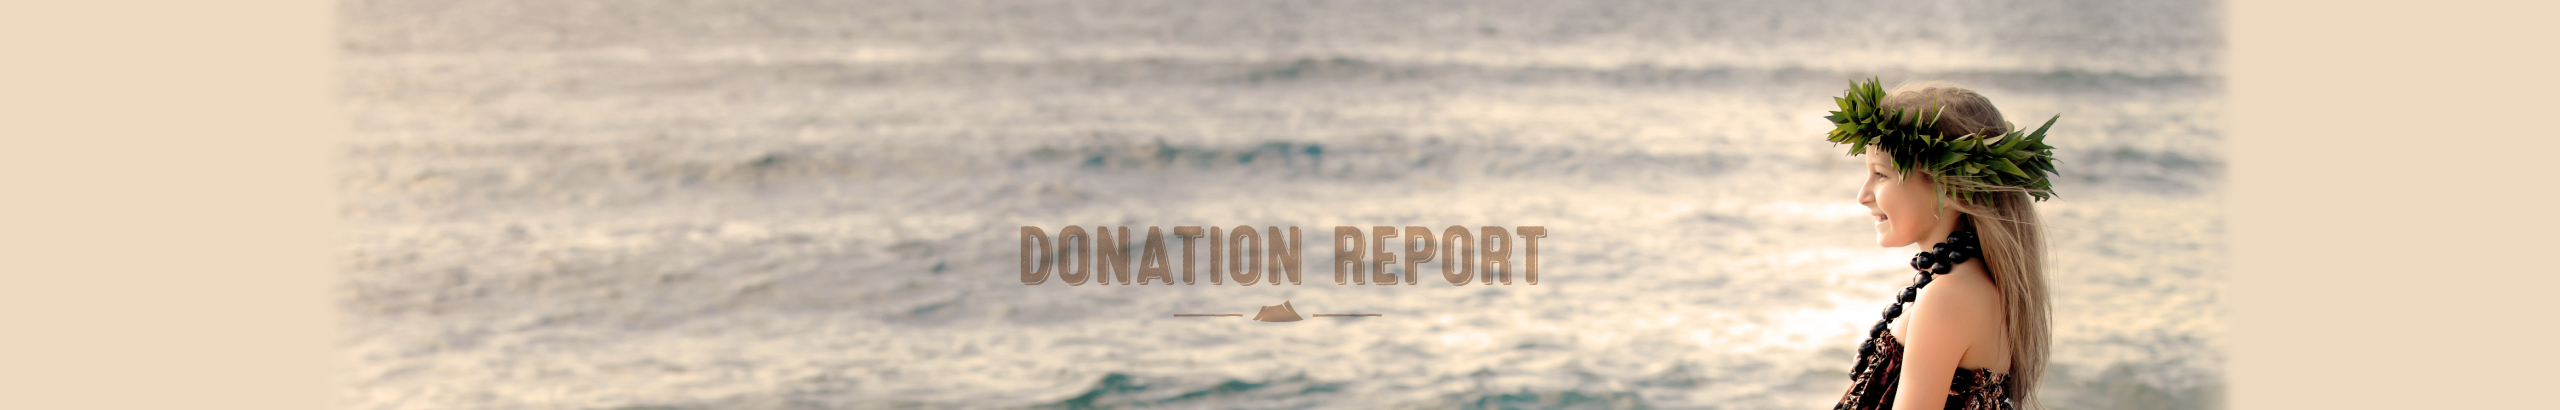 Contributing to Hawaii by donating to non-profit organizations